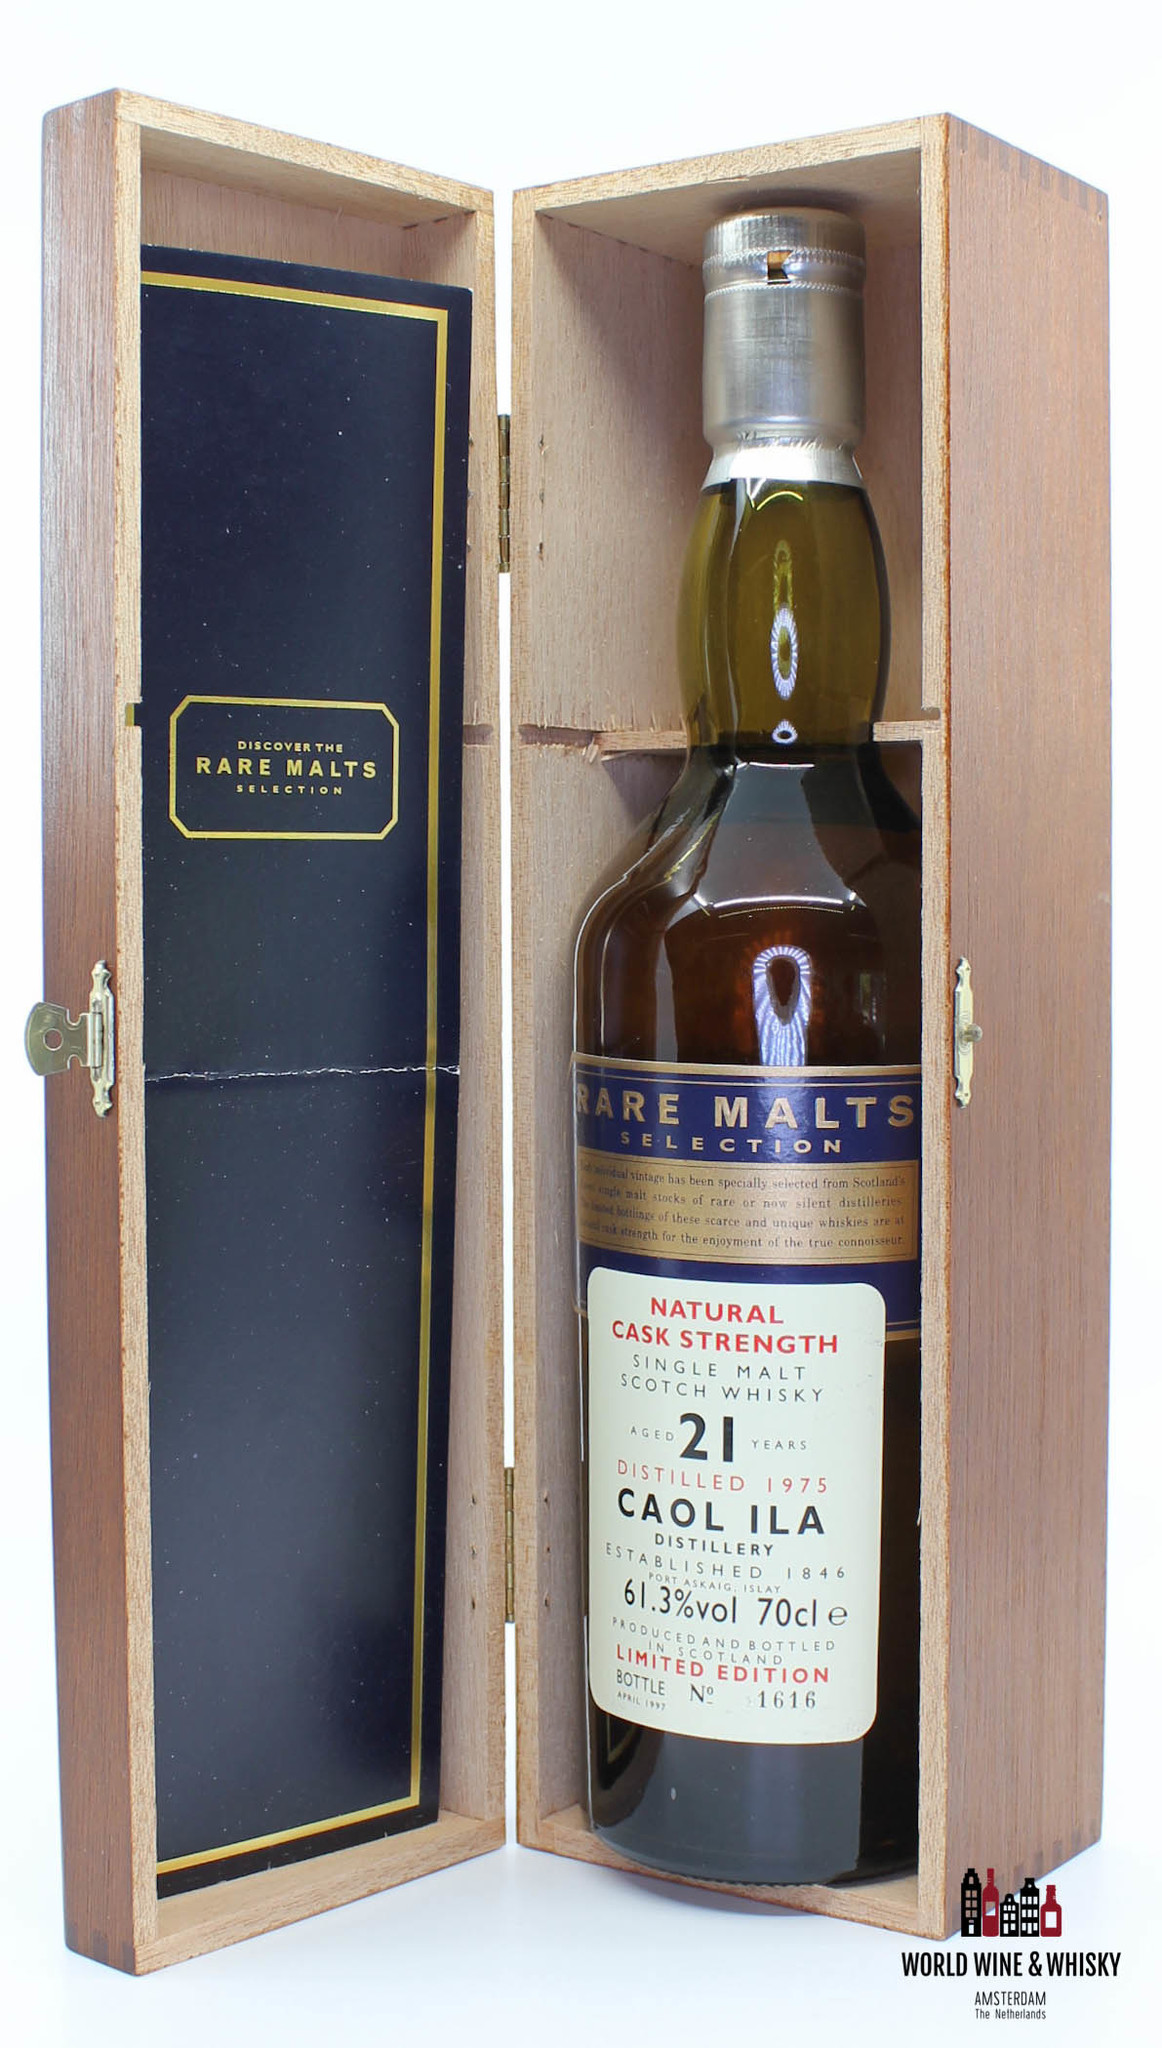 Caol Ila Caol Ila 21 Years Old 1975 1997 Rare Malts Selection 61.3% (in wooden box)